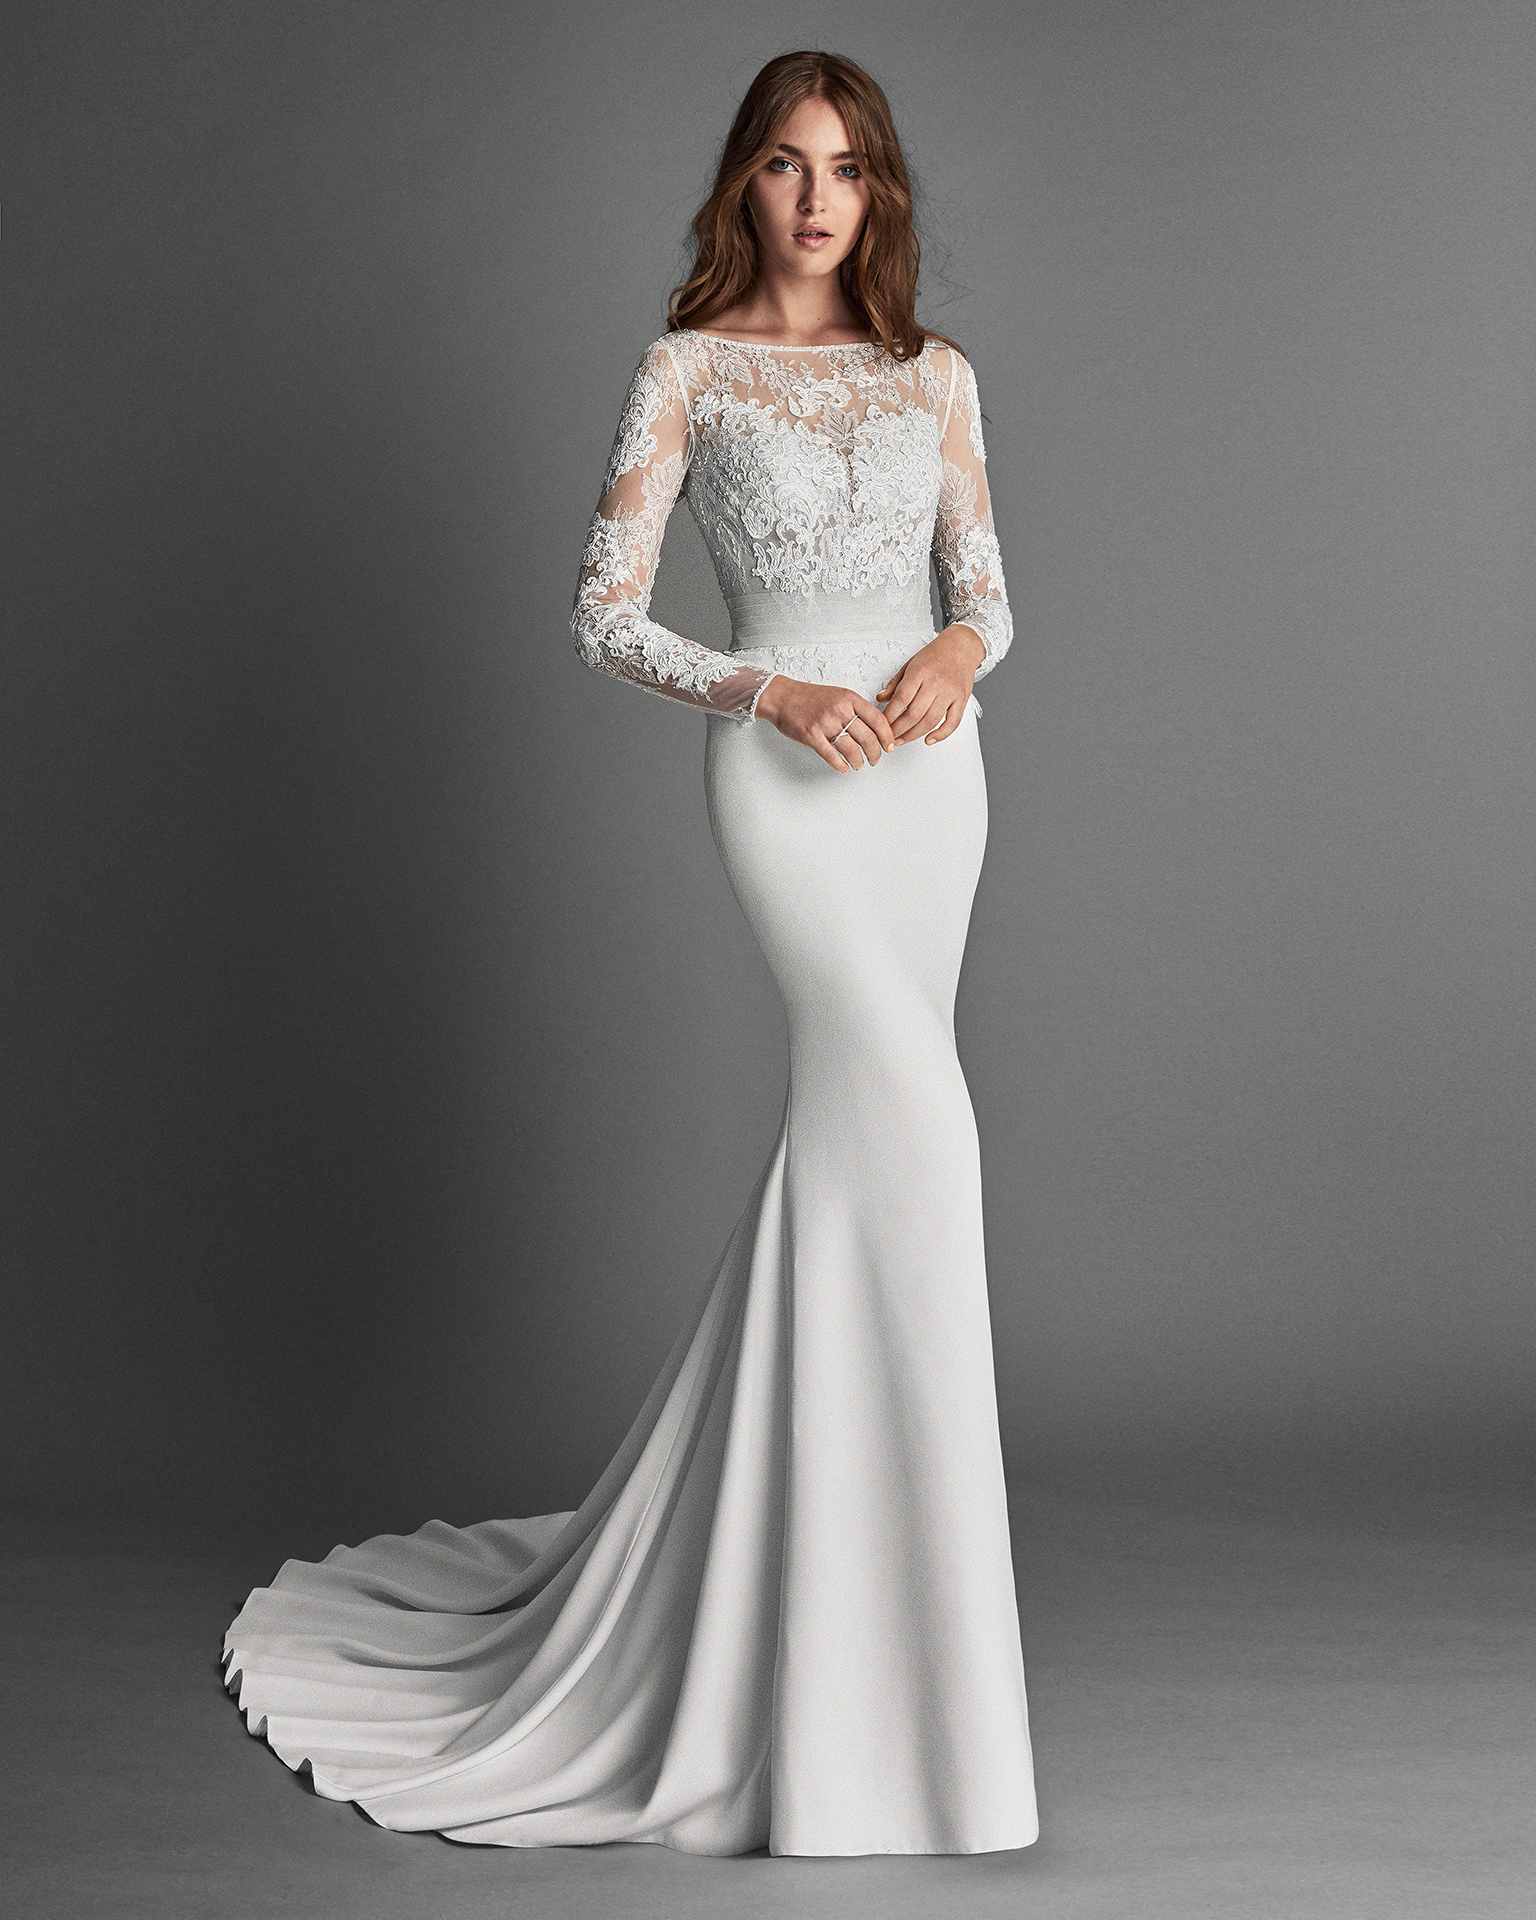 Mermaid-style crepe and lace wedding dress with long sleeves, bateau neckline, low back and beadwork detail, in natural.